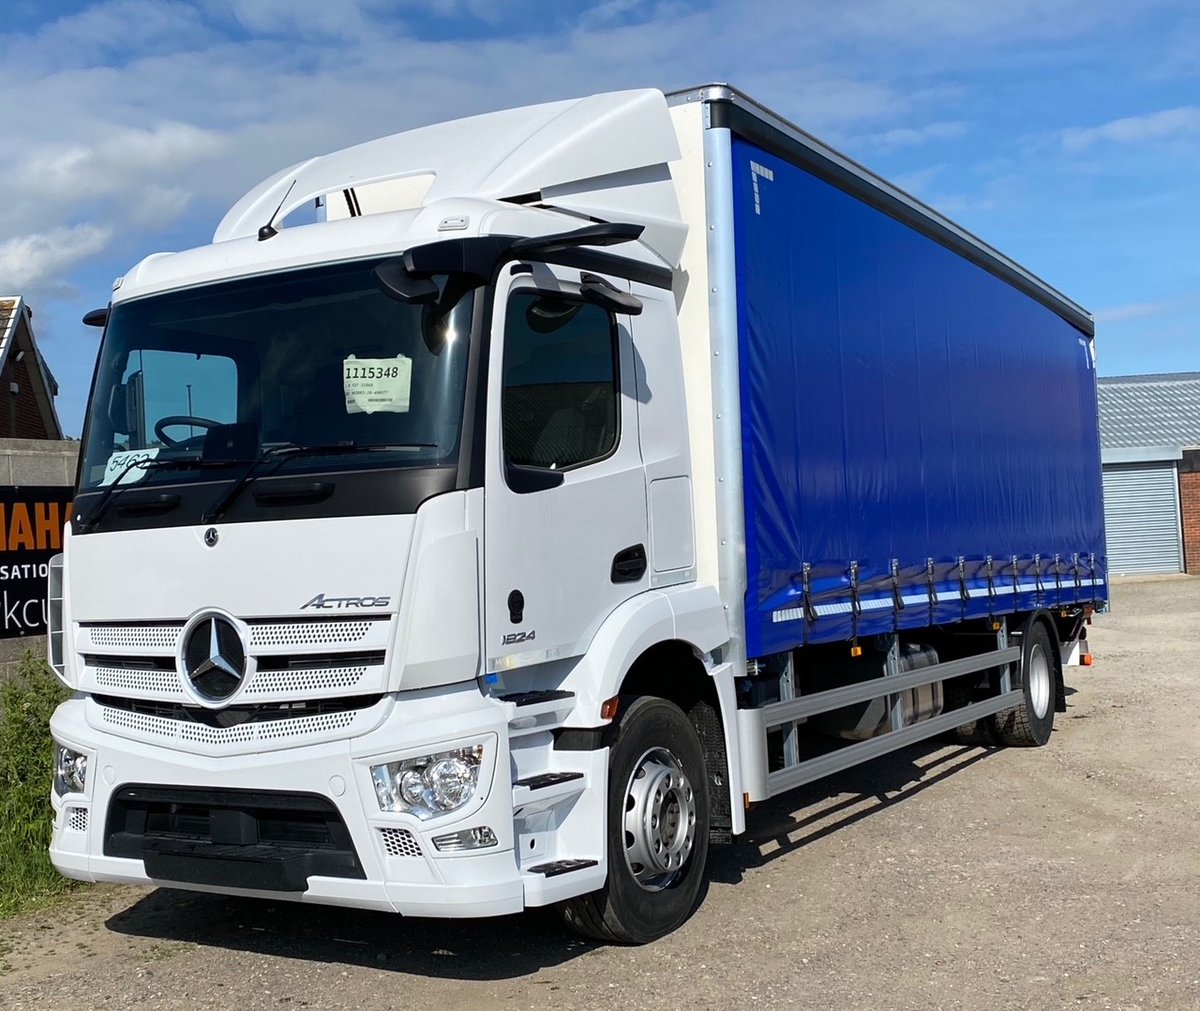 test Twitter Media - Another curtain-side conversion with tuck away tail lift for Ken Mallinson & Sons Ltd. Thank you to @belltruckandvan and @KMS_transport for the business. #KenMallinson #BellTruckandVan #MartinWilliamsHull https://t.co/fC9WEoEX4t